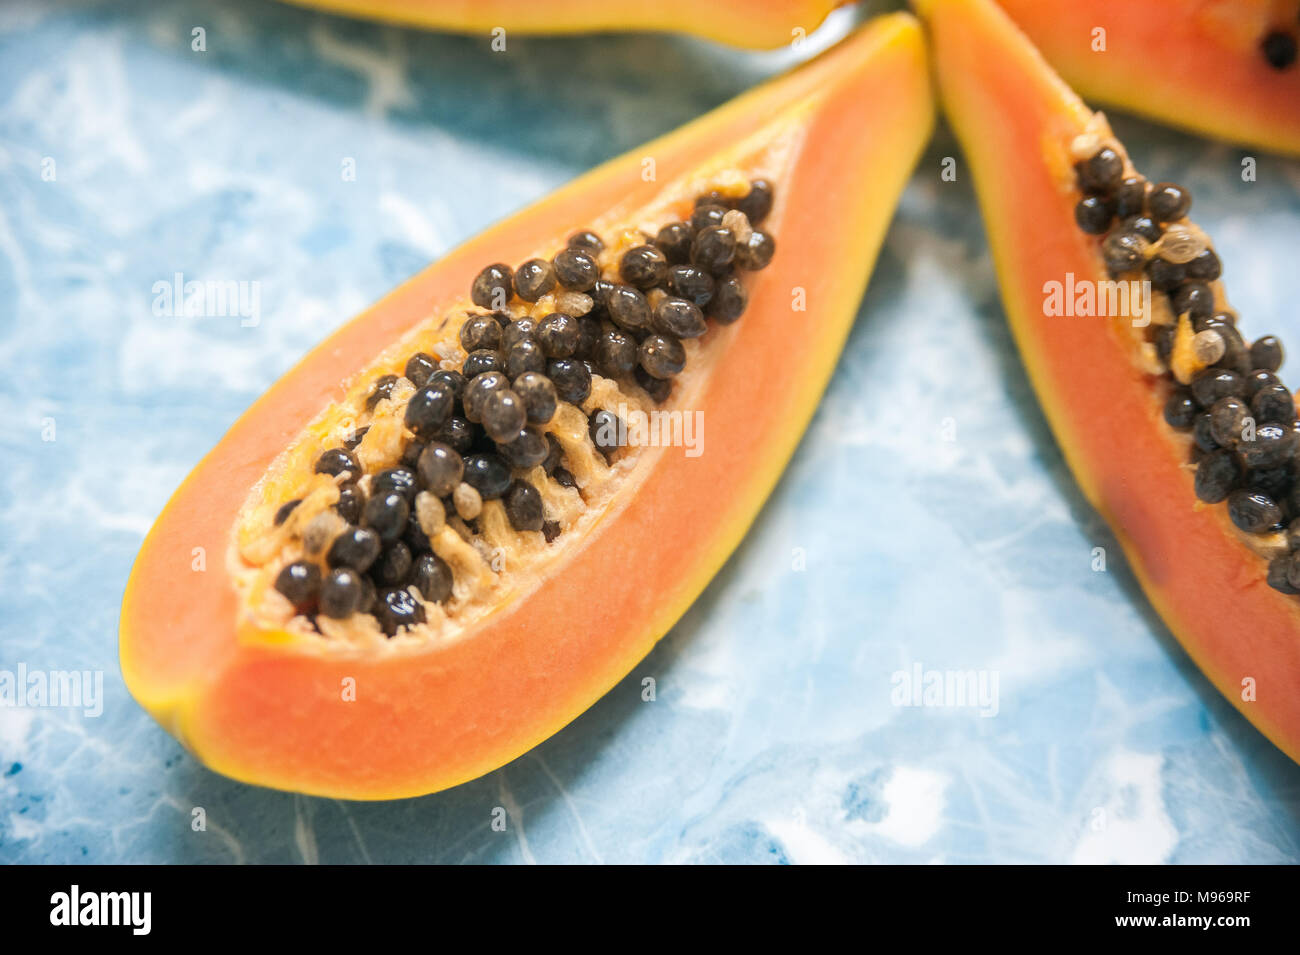 Juicy slices of ripe papaya on a blue background. Exotic fruits, healthy food. Stock Photo